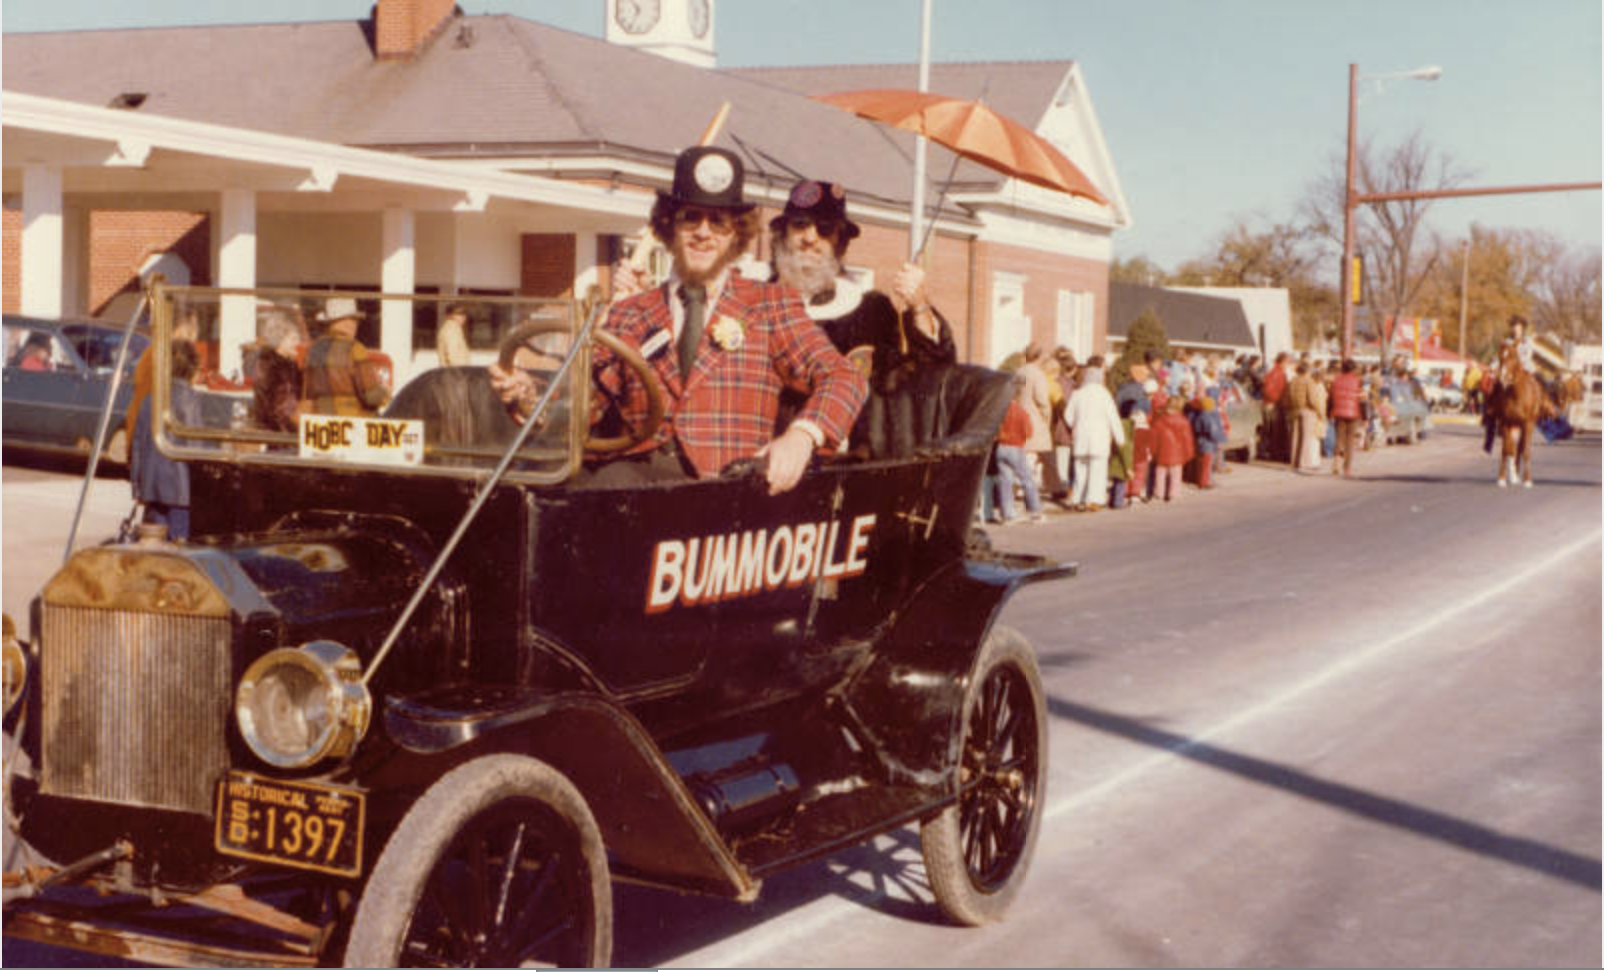 Digital Library of South Dakota (DLSD) Gordon Niva as Weary Wil drives the Bummobile on Fifth Avenue during the 1975 Hobo Day parade.